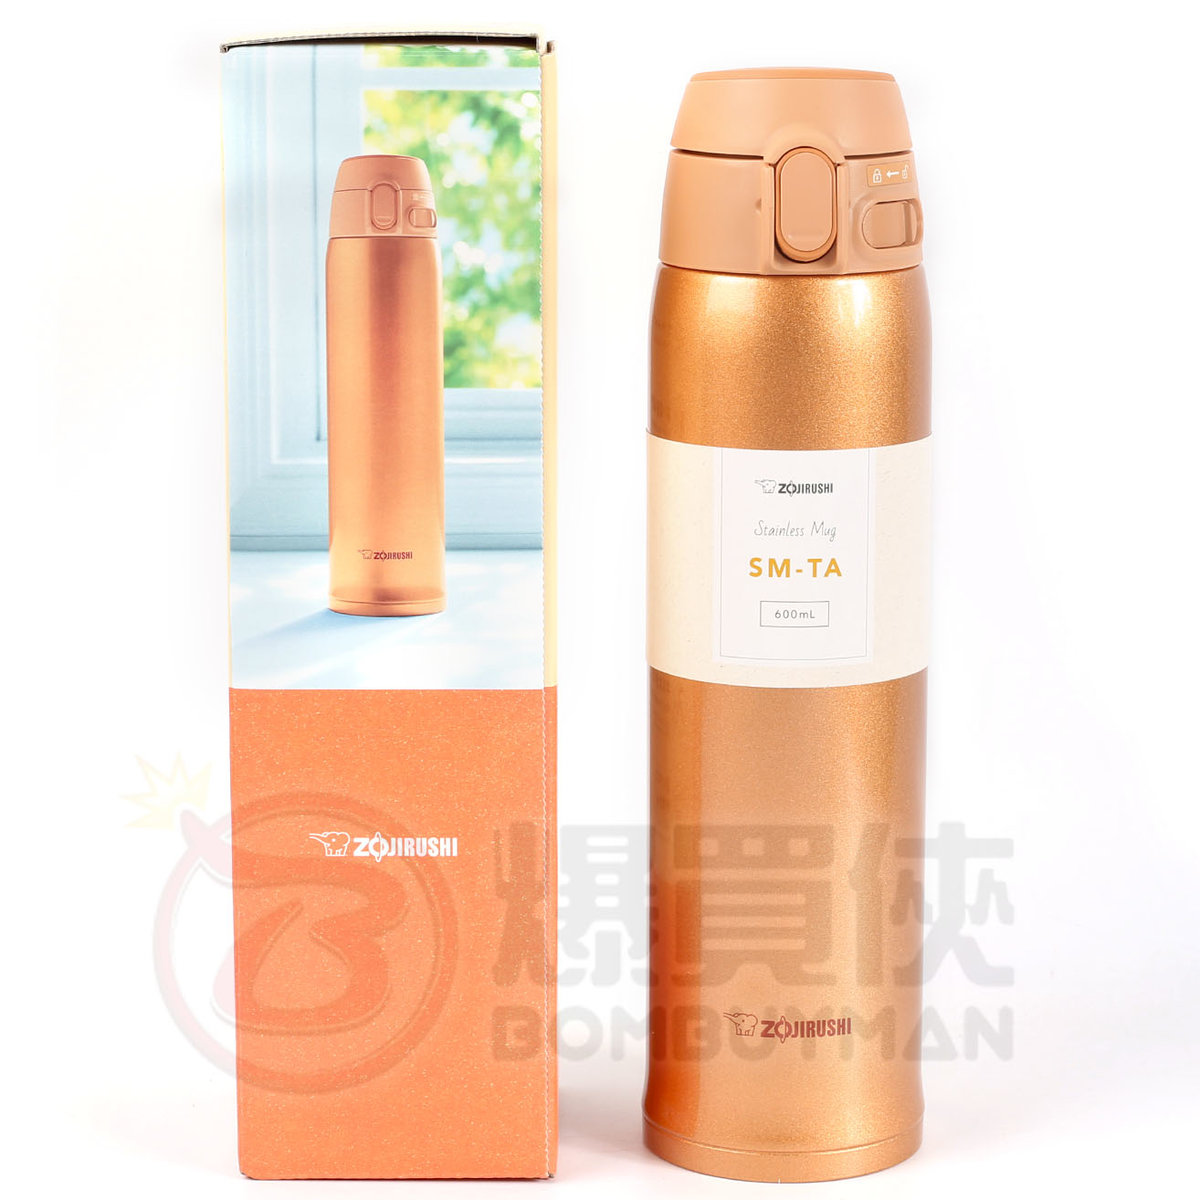 0.60L OneTouch Stainless Steel Thermal Bottle SM-TA60DM (Gold) (Parallel Import)